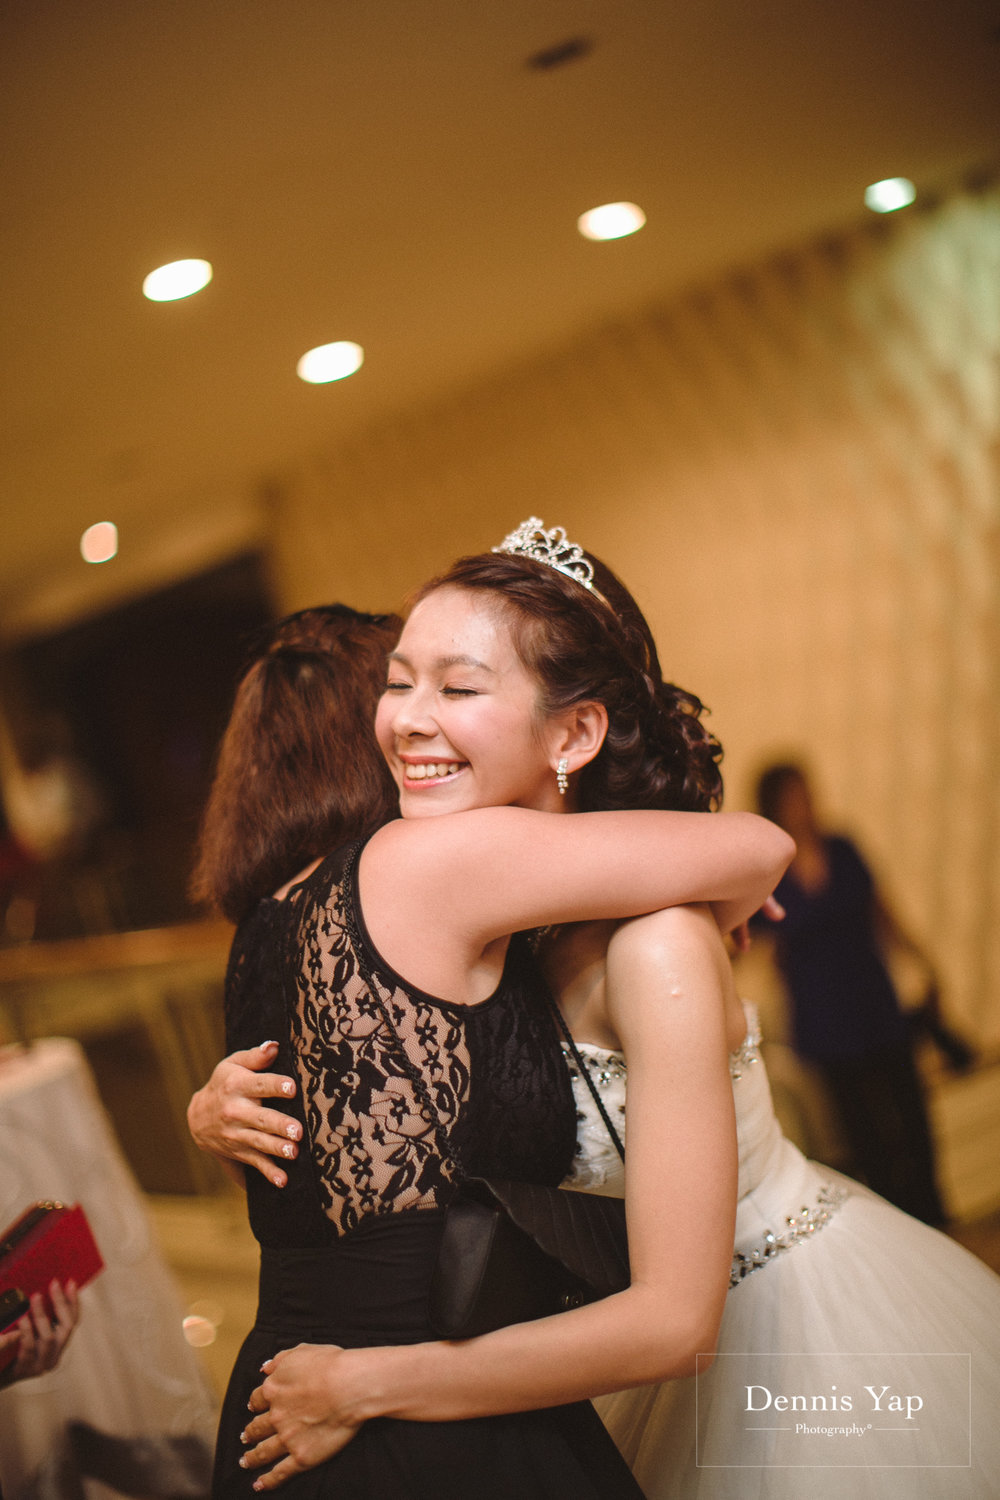 alan shelly wedding dinner simple style traditional chinese reataurant dennis yap photography-7.jpg